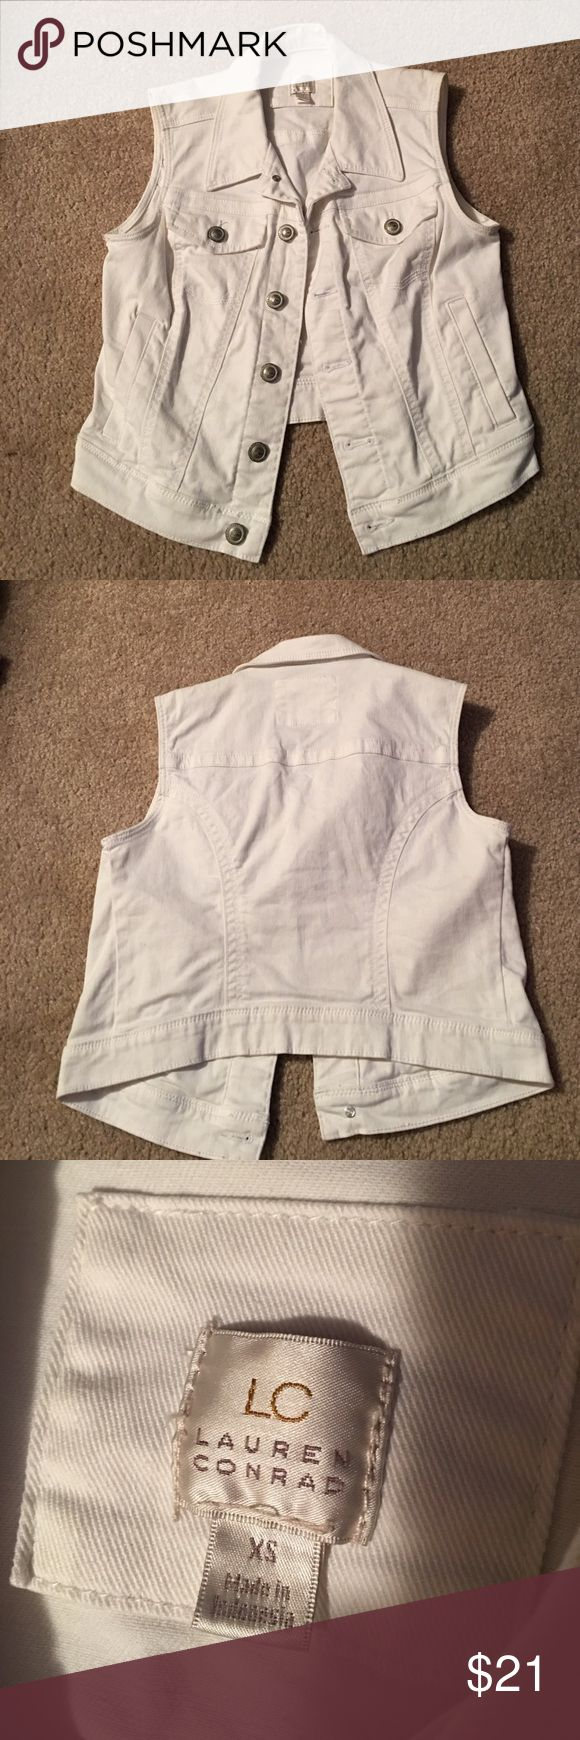 Lauren Conrad white denim cropped vest size XS Super cute NWOT white denim vest by Lauren Conrad. Never worn. Size XS. Would be super cute with layering. OPEN TO OFFERS LC Lauren Conrad Jackets & Coats Vests